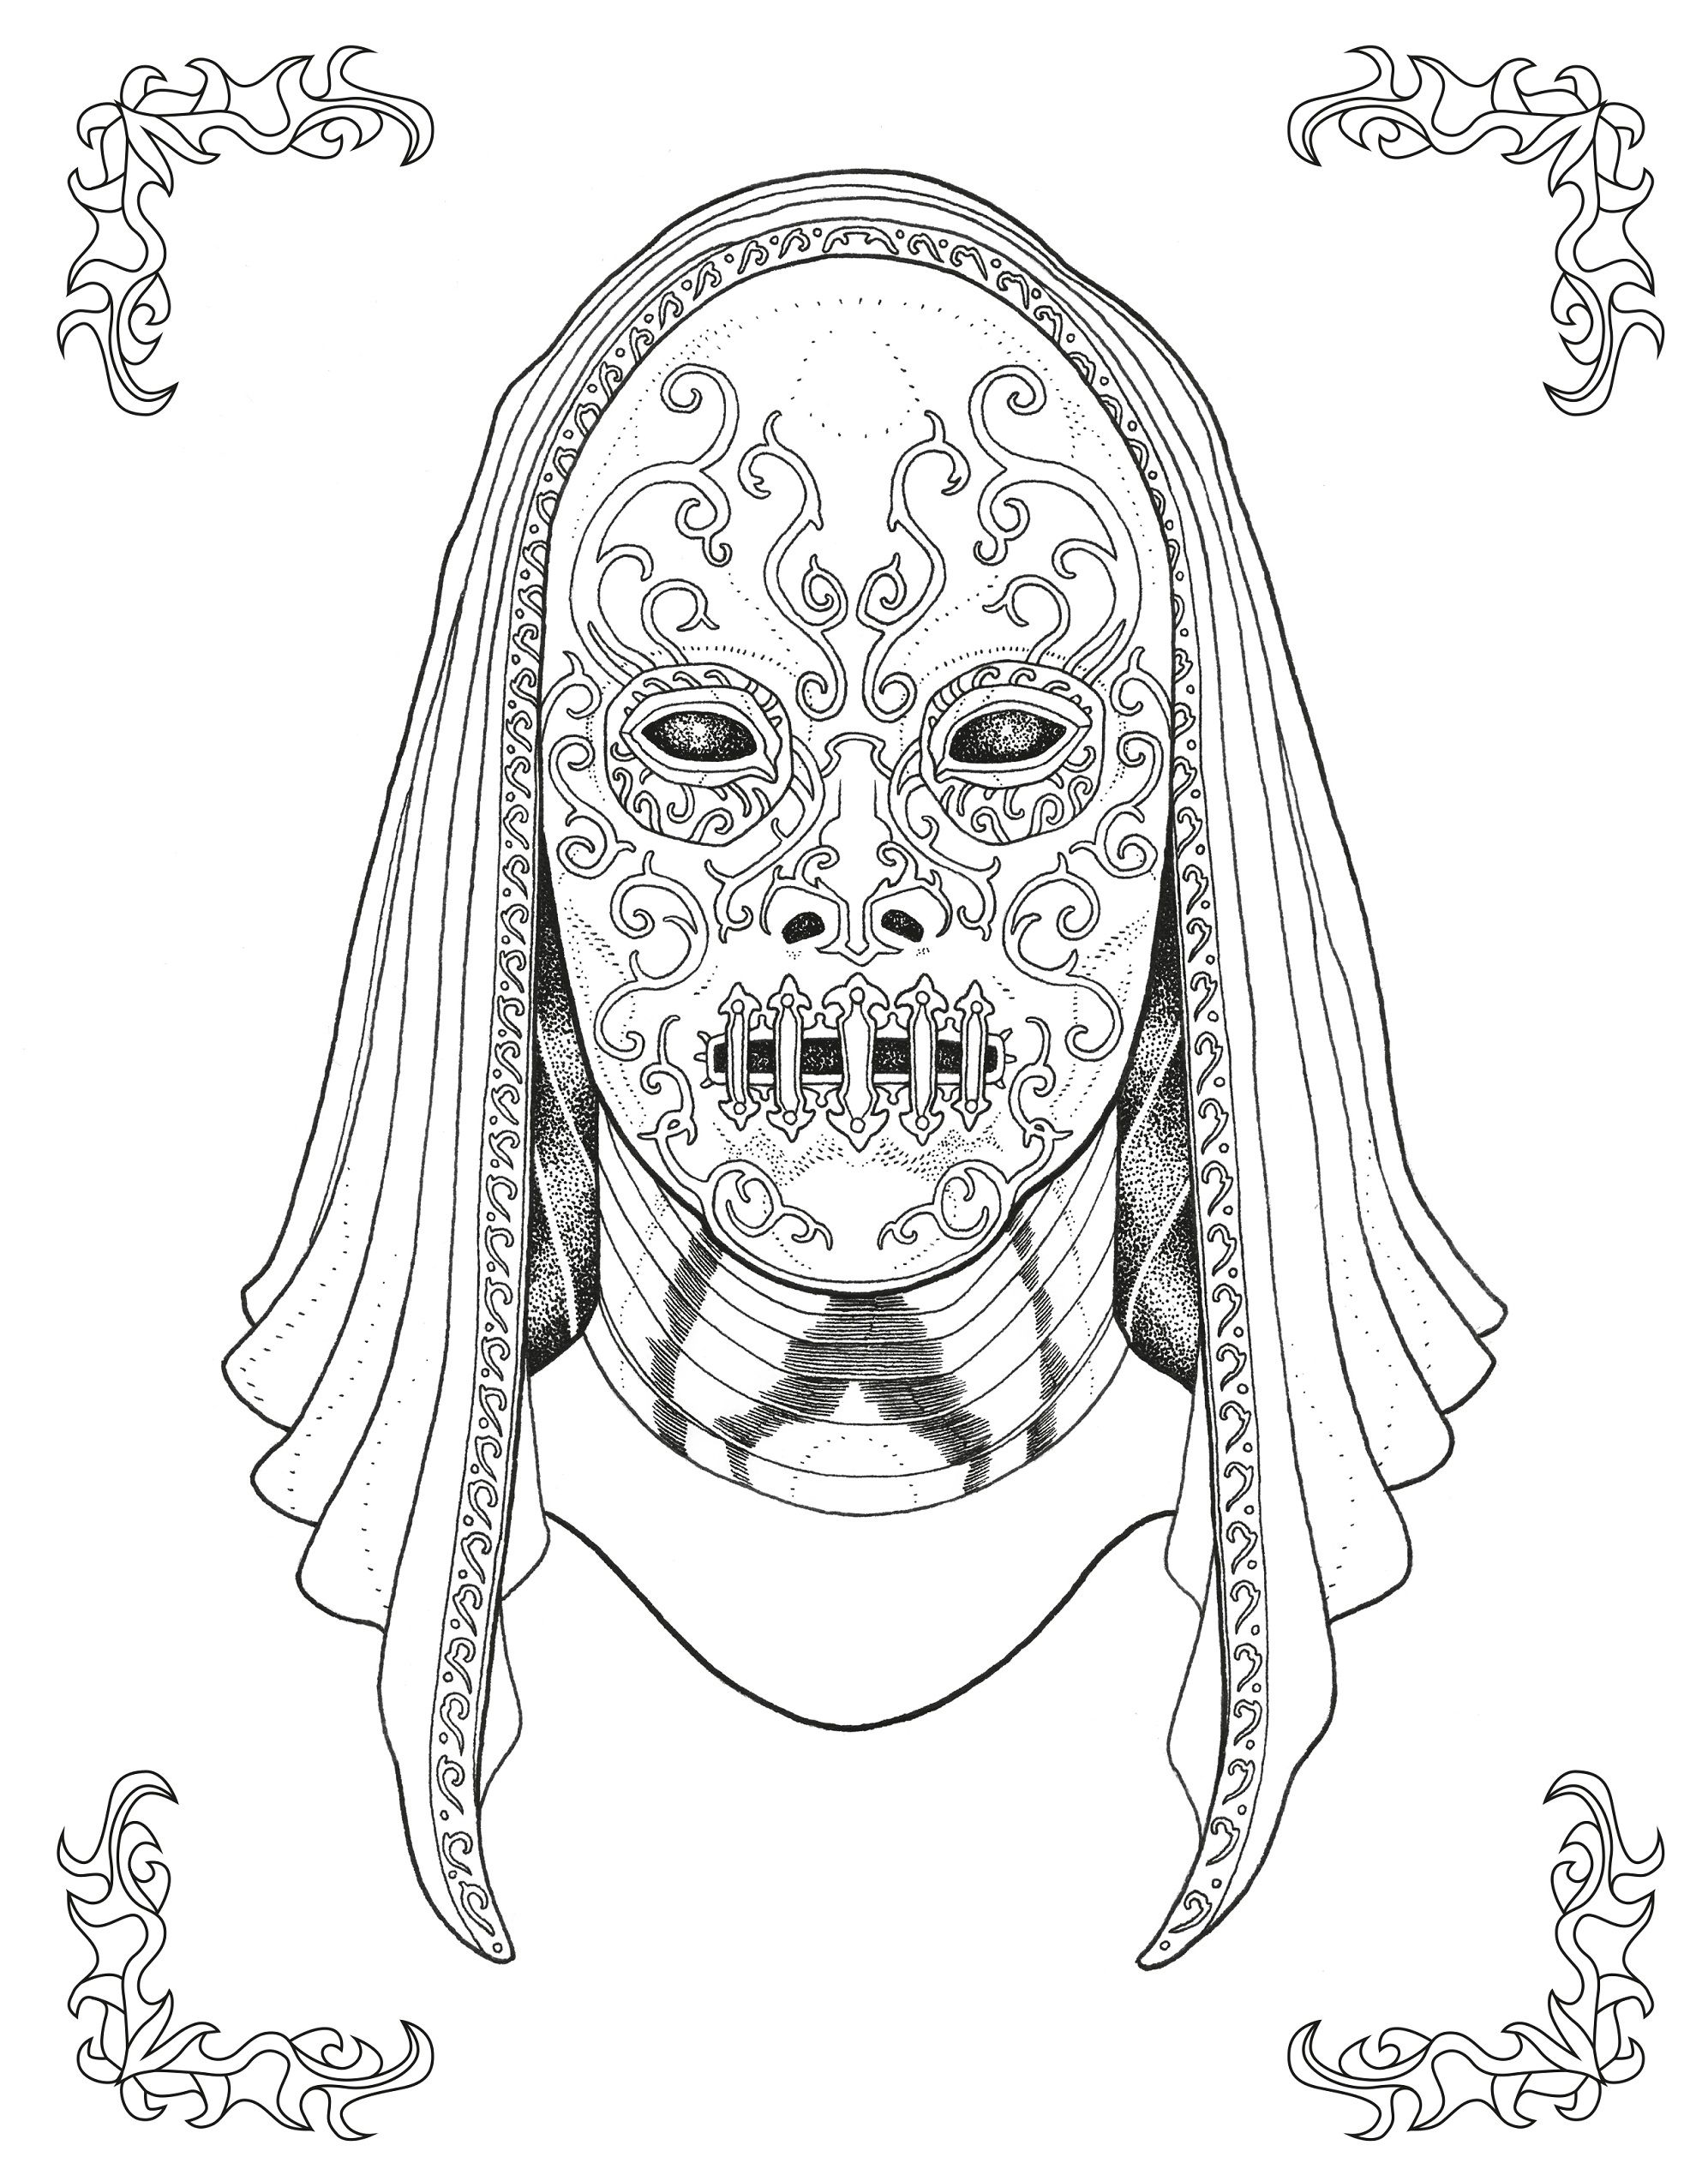 This Death Eater Design From The Harry Potter Magical Places And Characters Colouring Book Is Fantastic